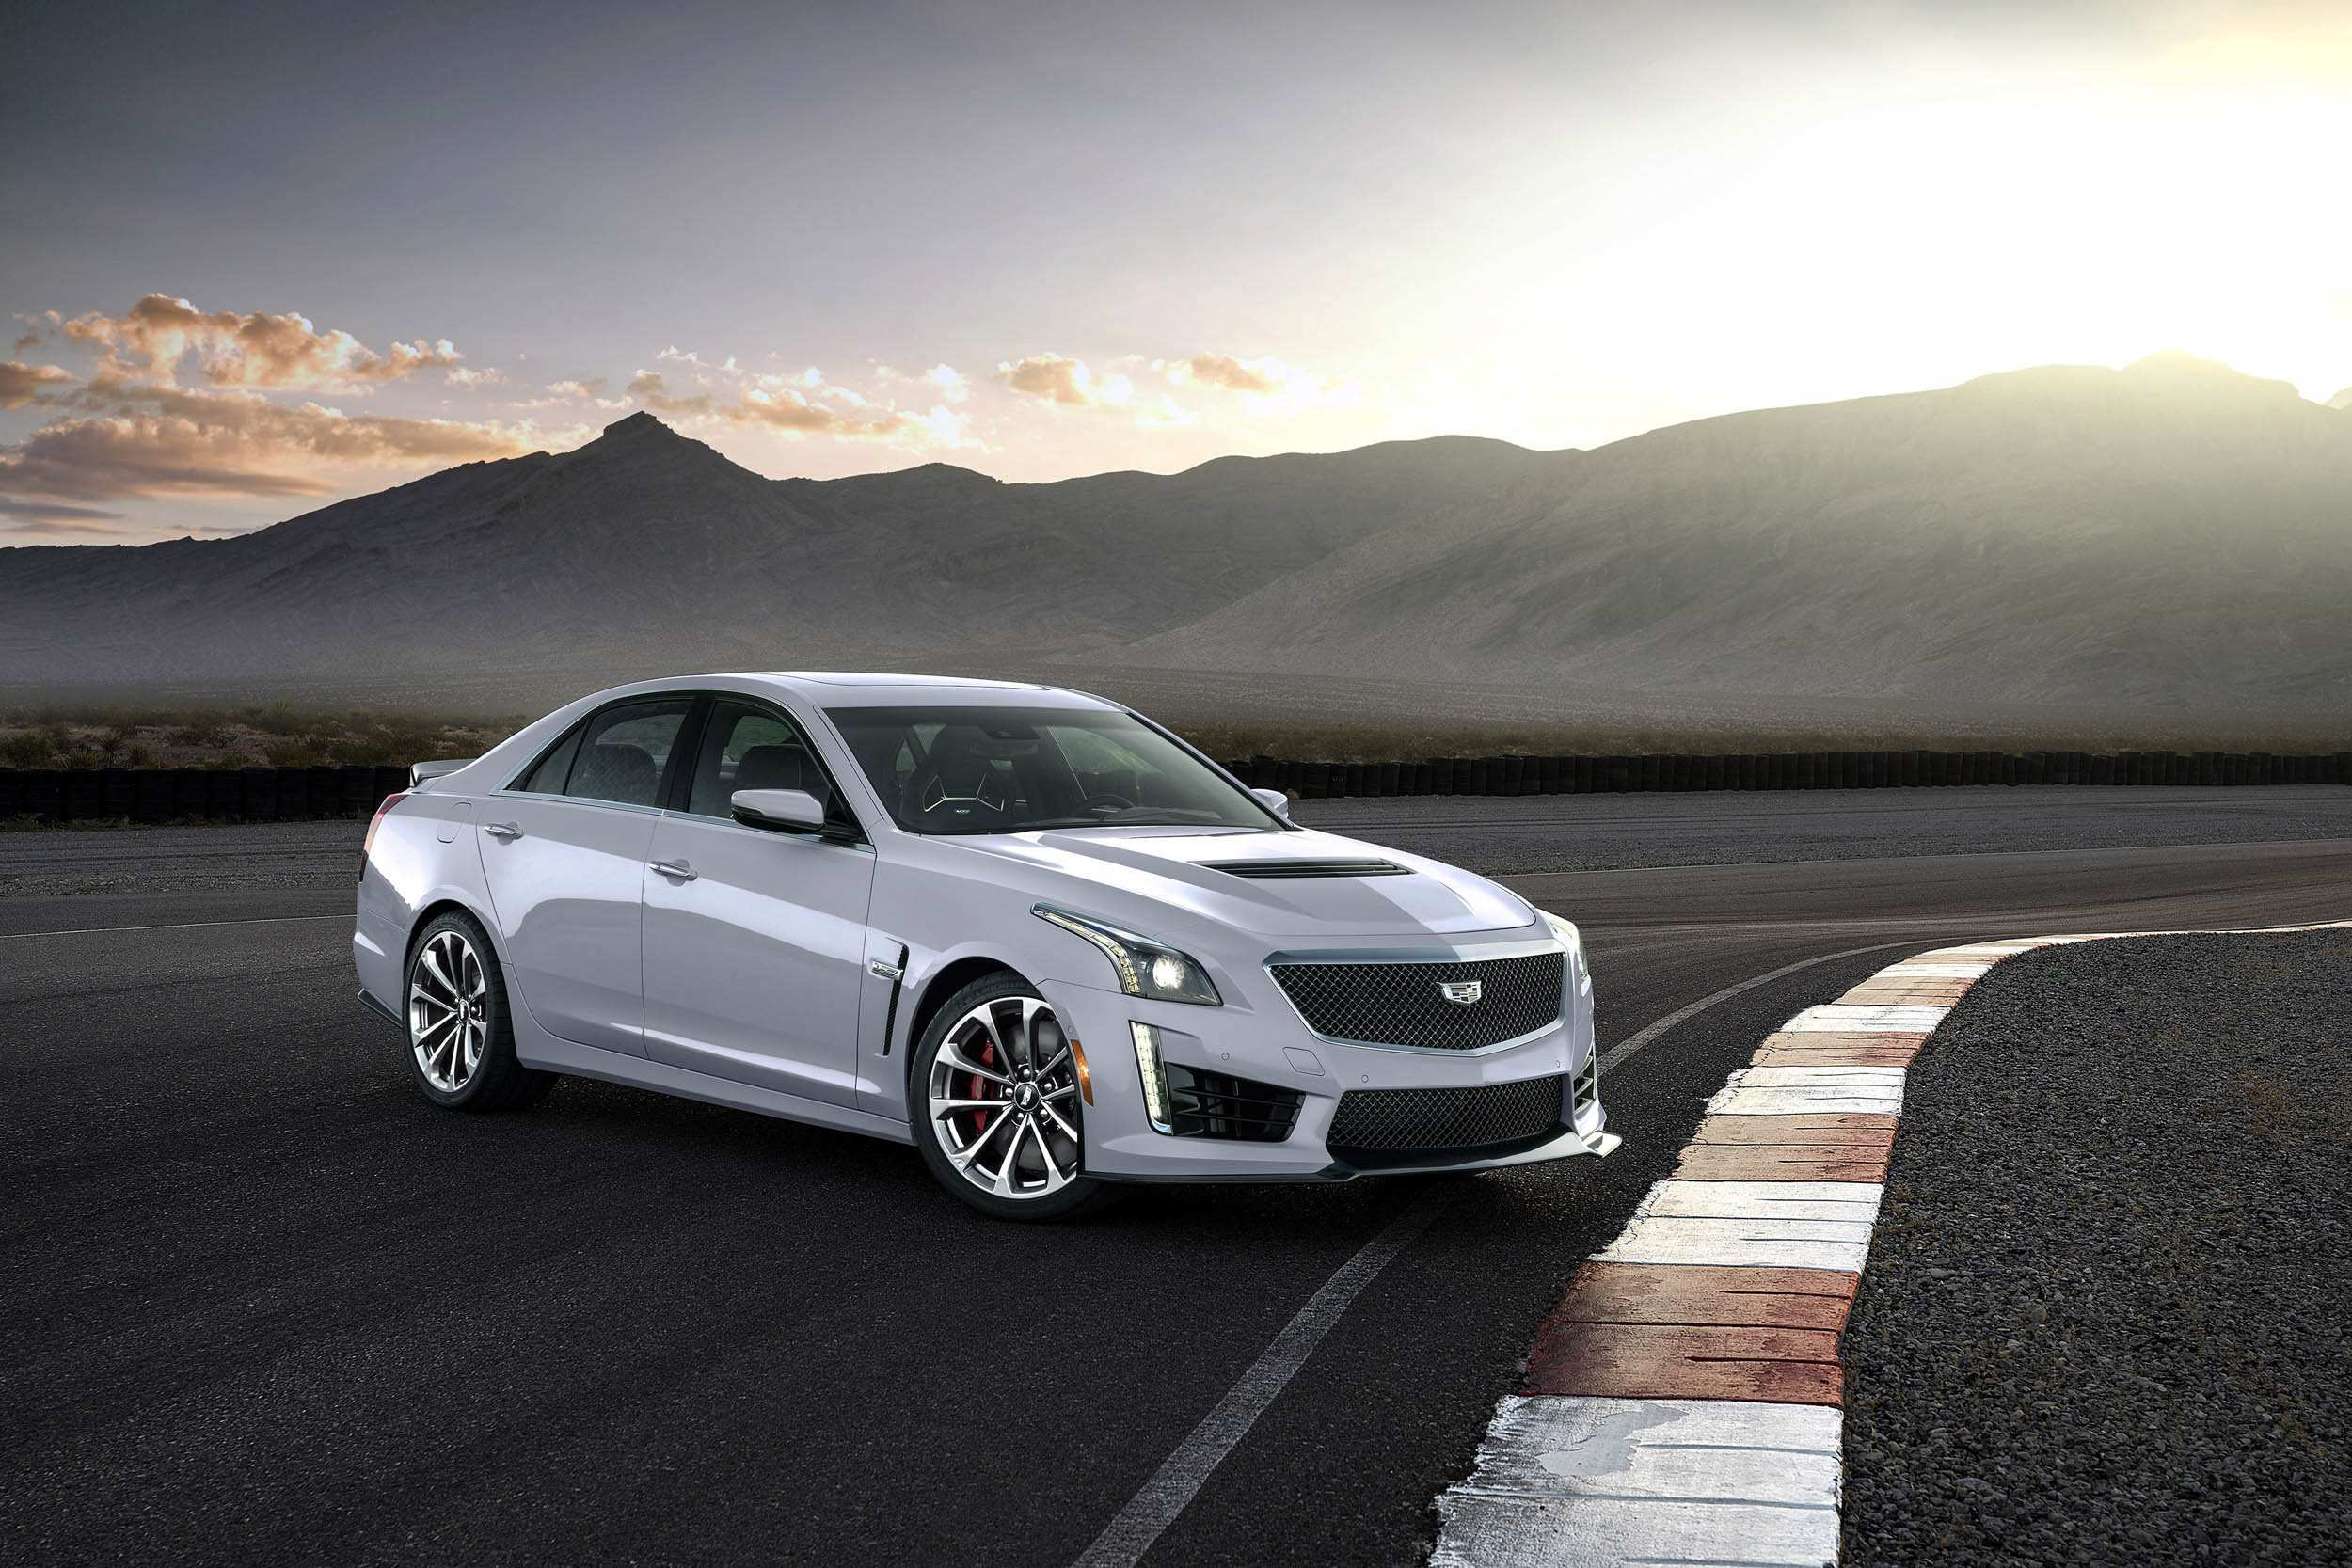 71 The Best 2019 Cadillac CTS V Configurations